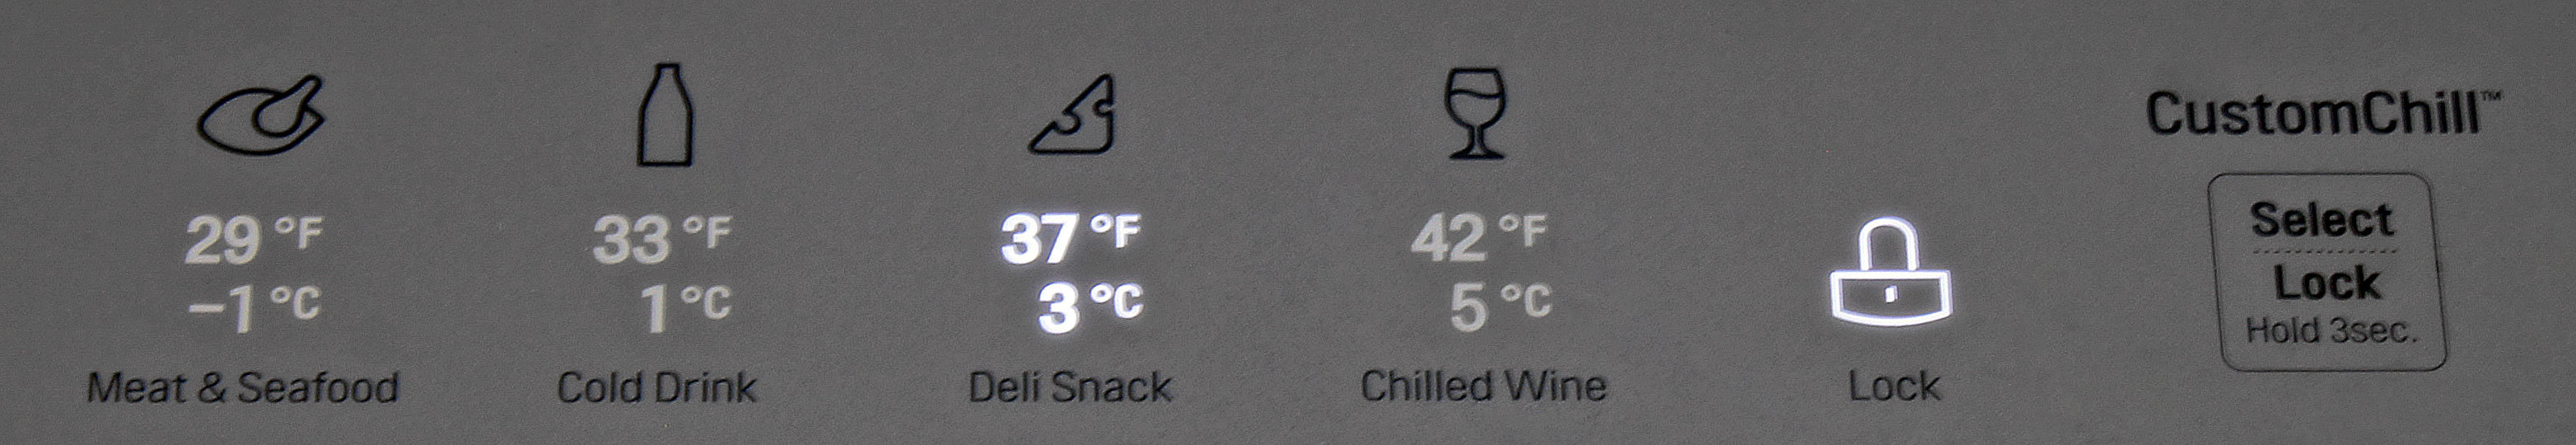 The LG LMXS30776S's central drawer breaks its four different settings down by temperature and recommended food type.